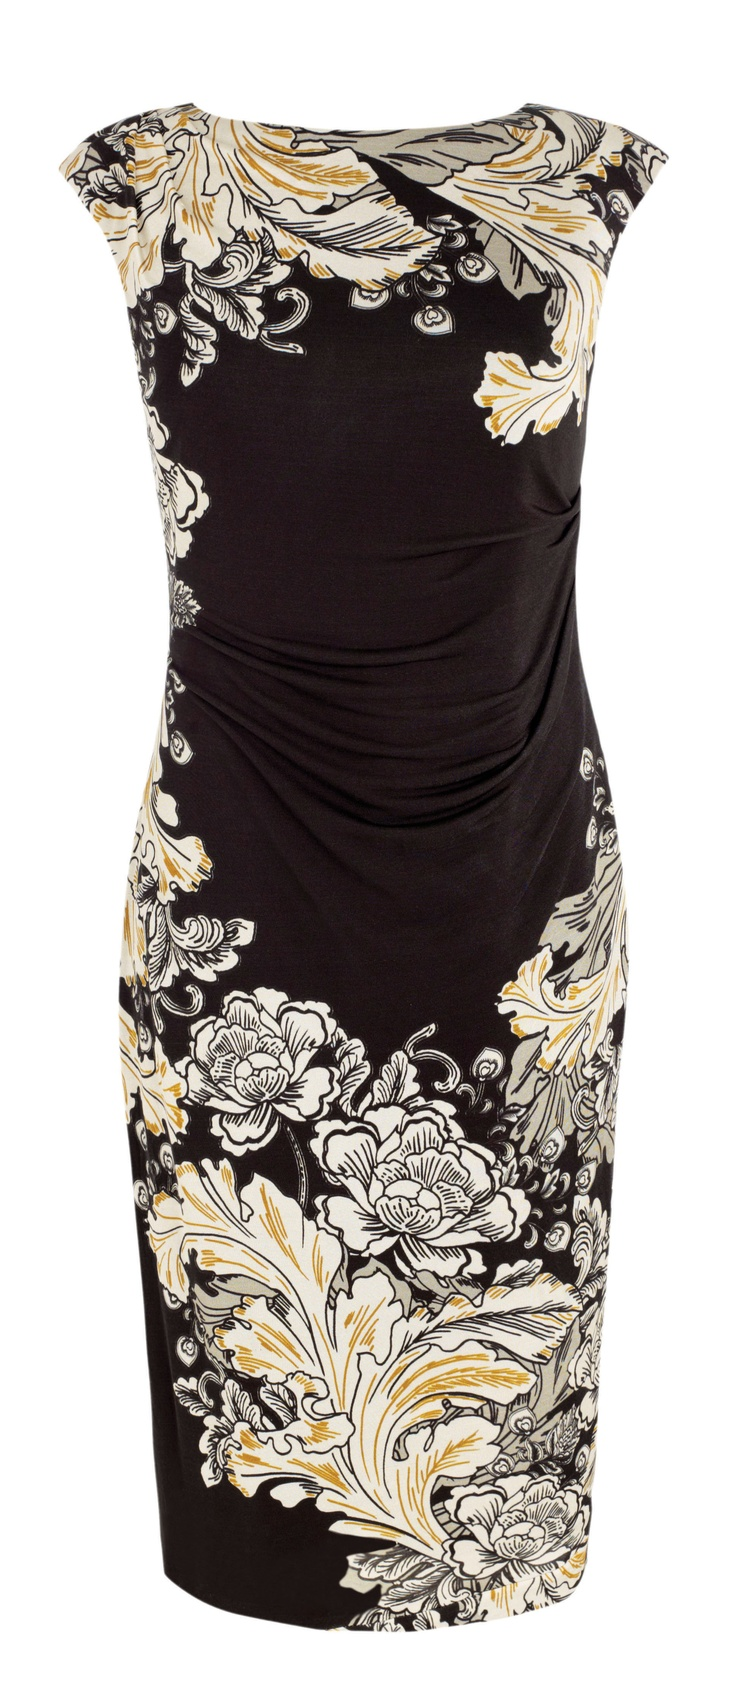 A pretty, Chinese-inspired applique shift dress to bring an air of mystery to your evening...Debenhams